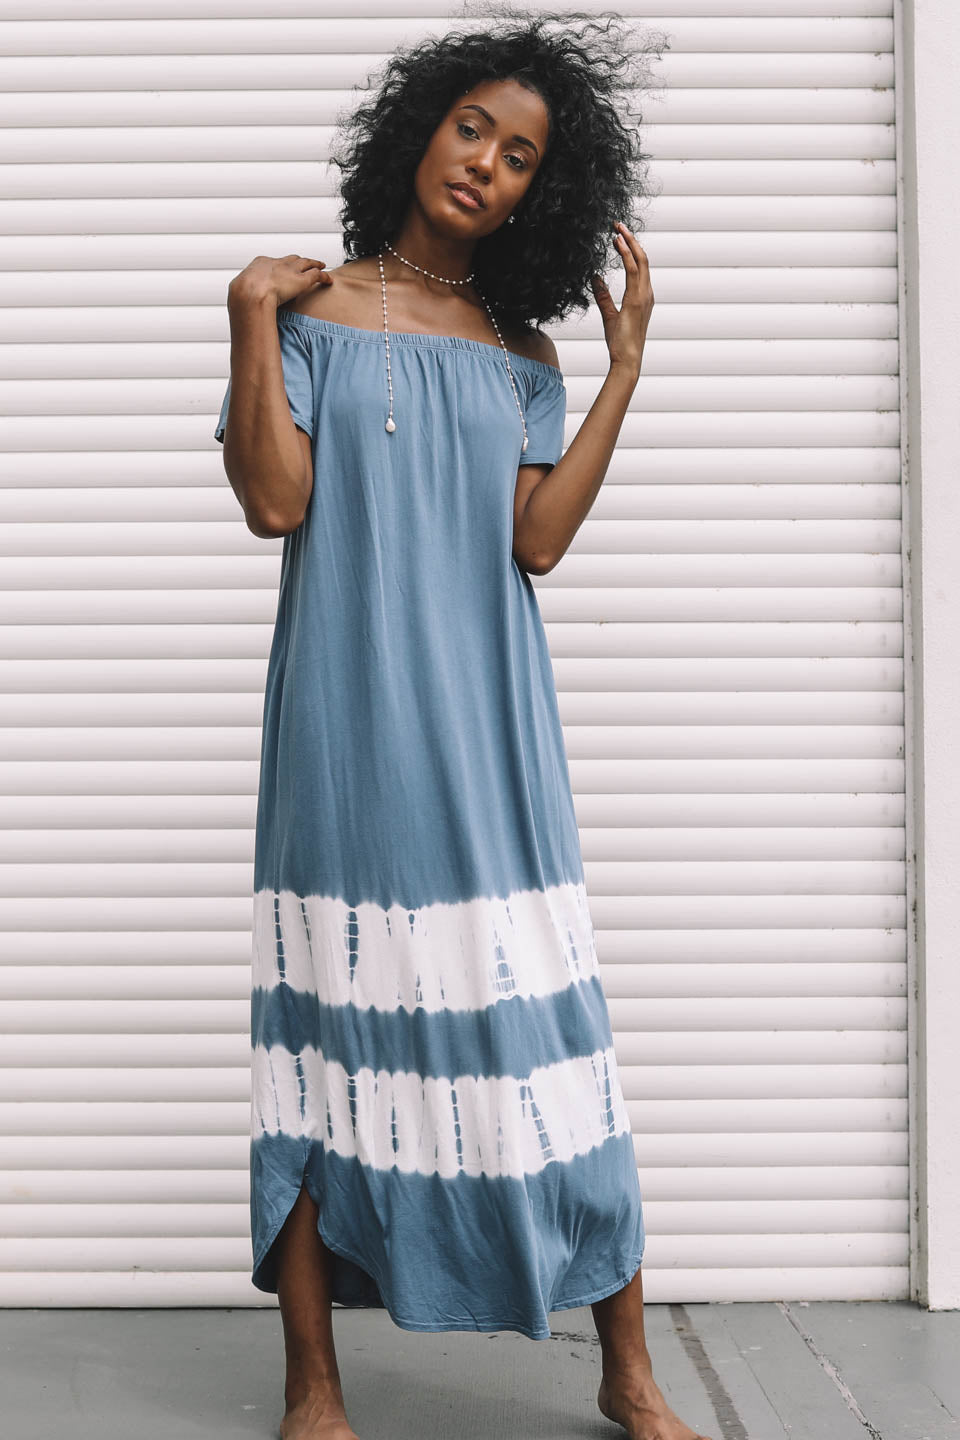 Up High Blue Tie Dye Dress - Amazing Lace